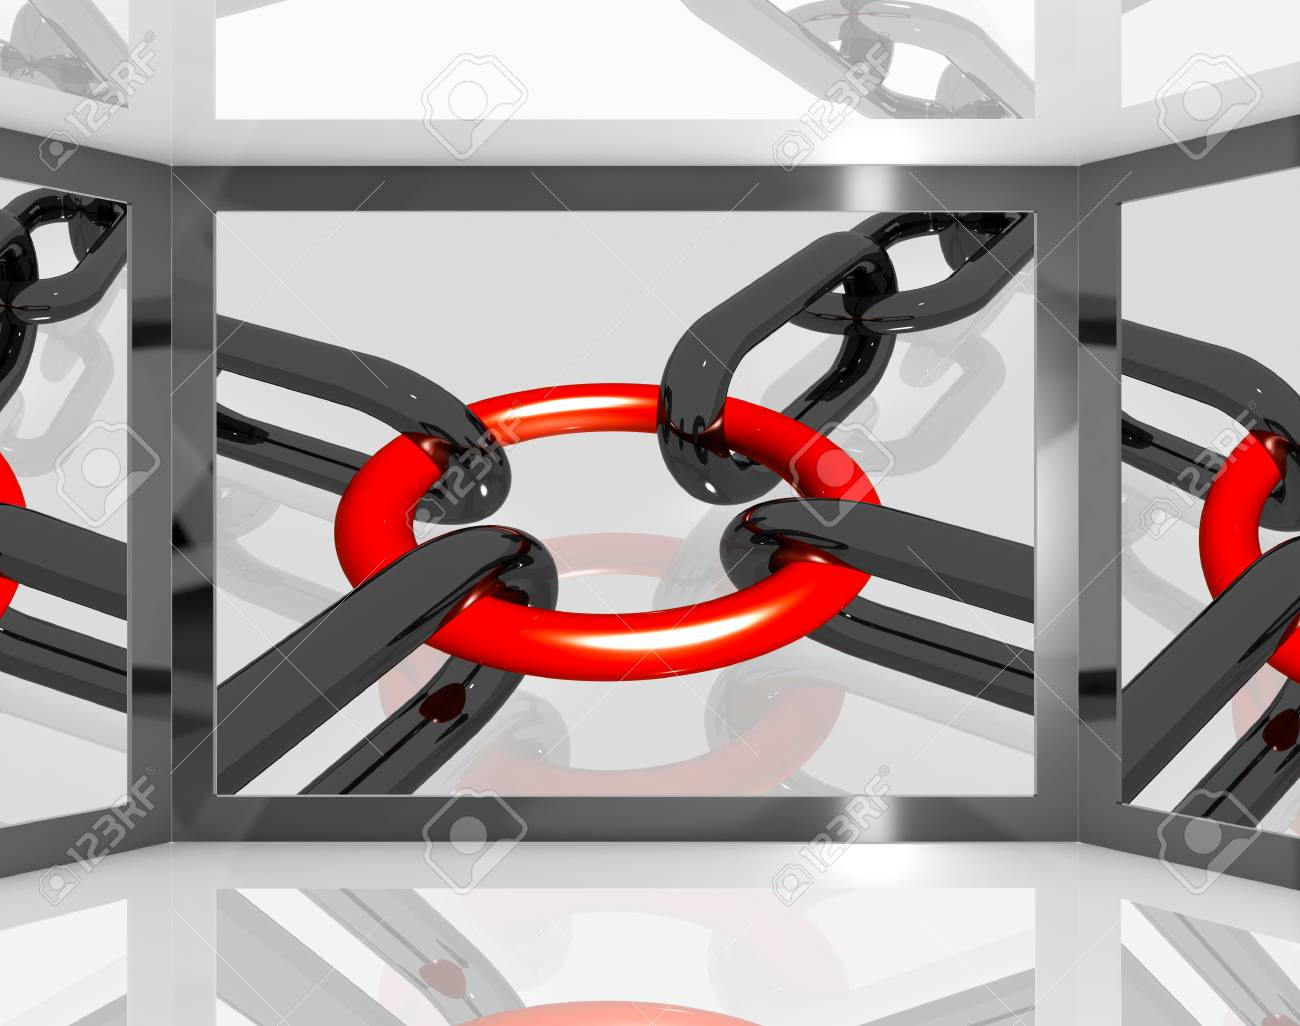 Chains Joint On Screen Showing Teamwork And Unity Stock Photo - 16936606